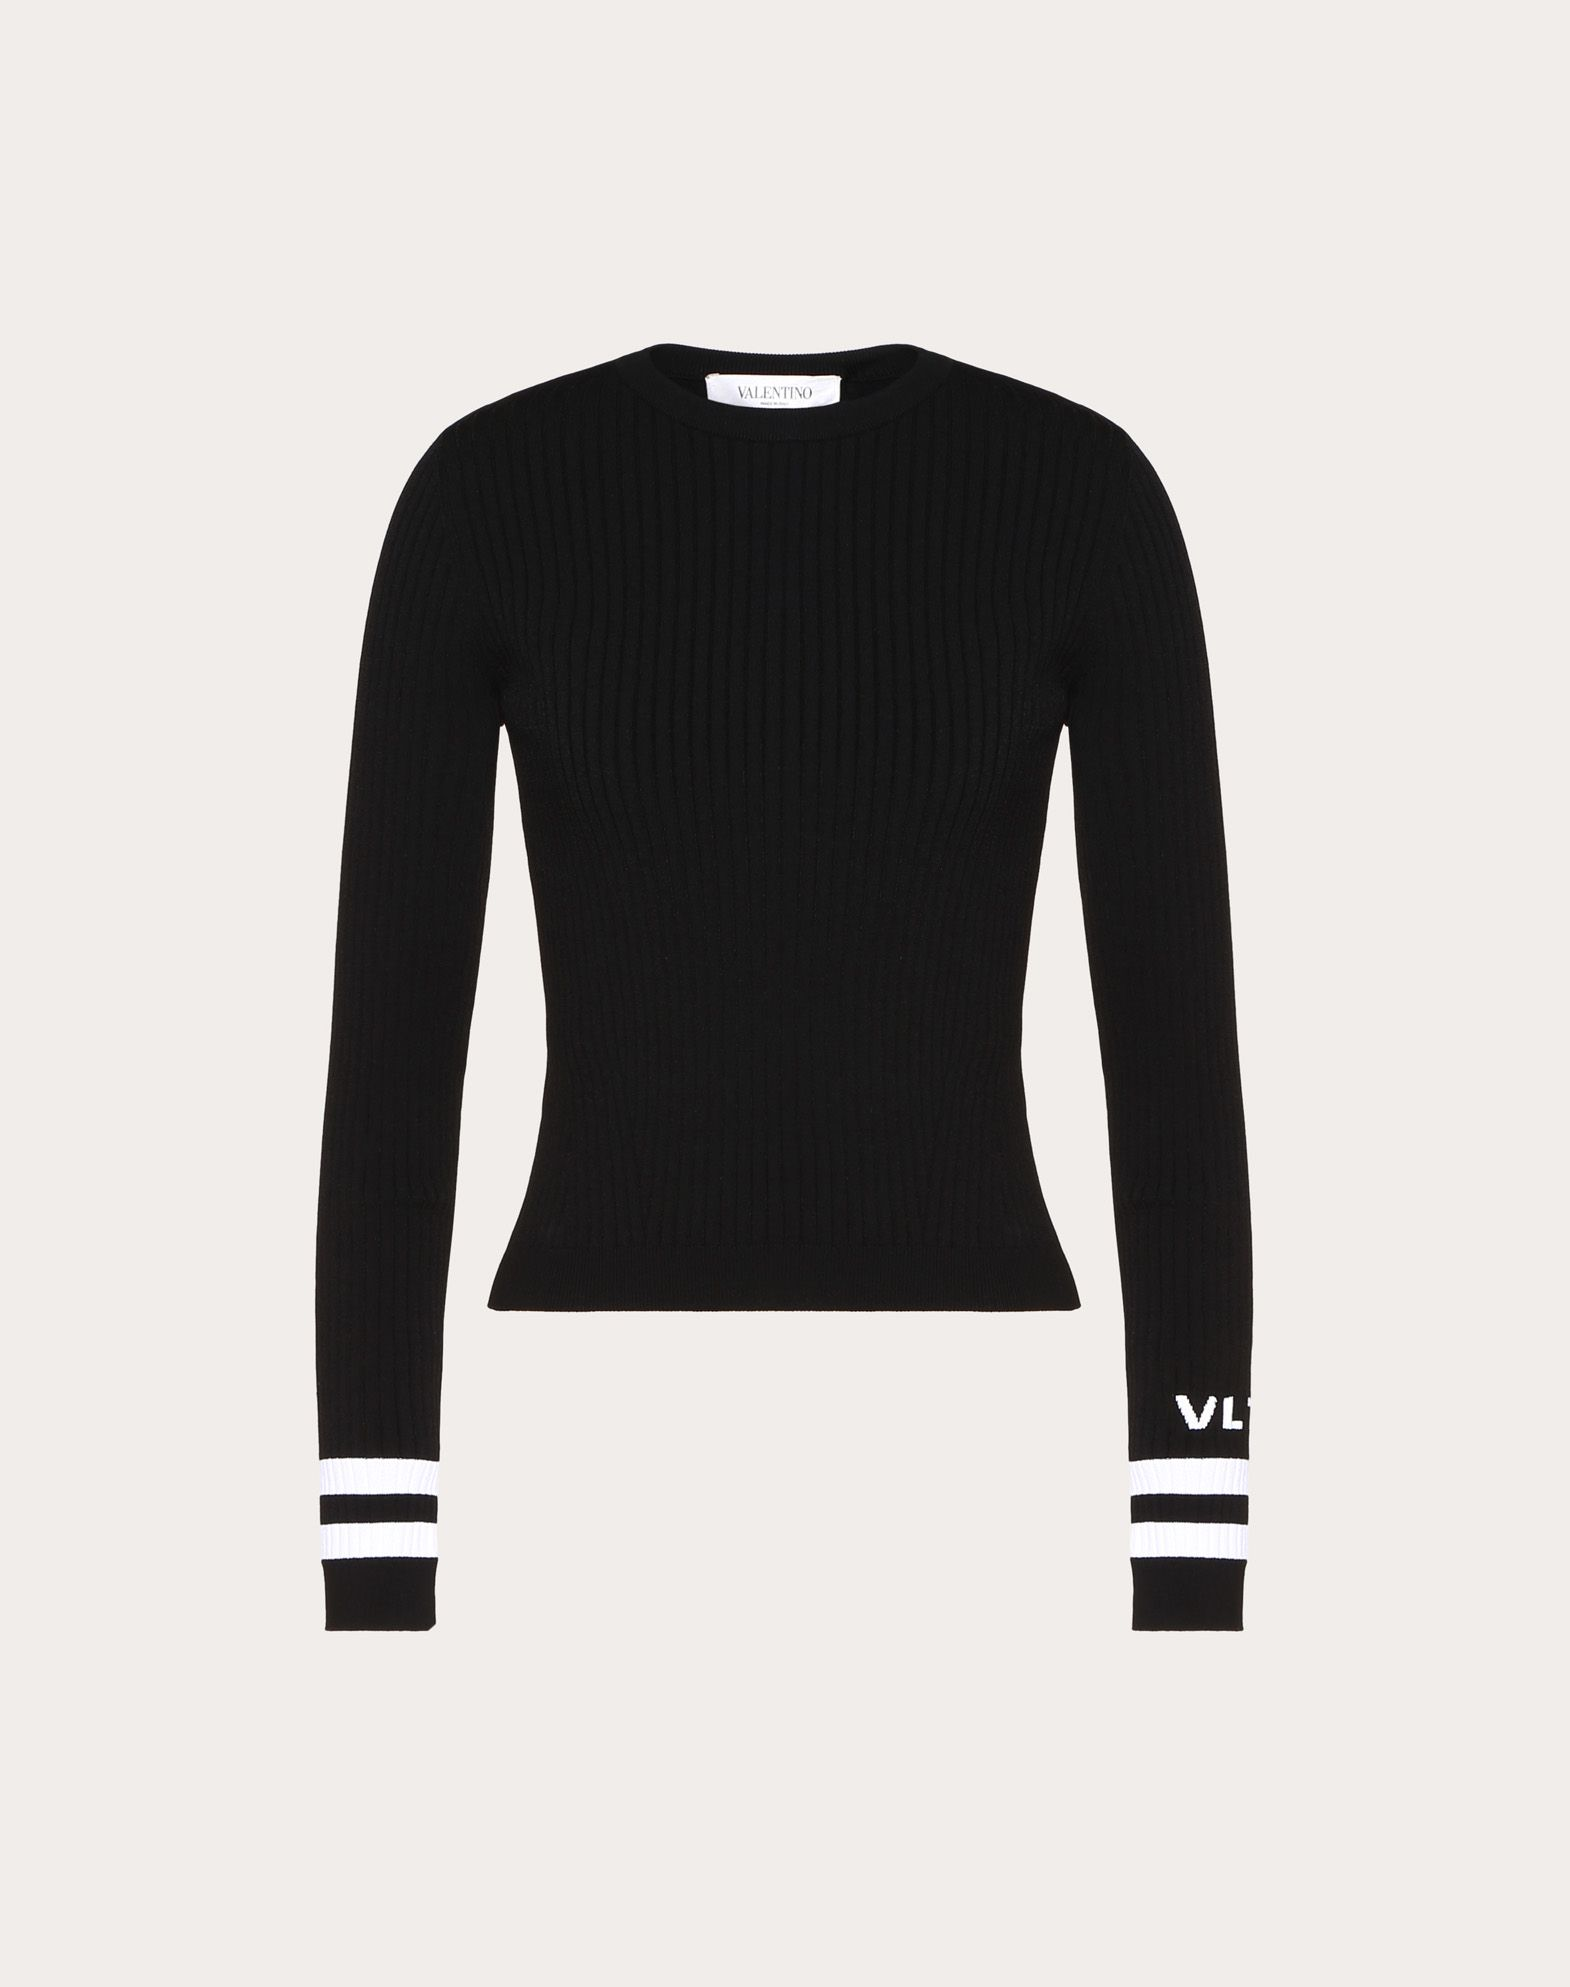 VLTN Stretch Viscose Sweater